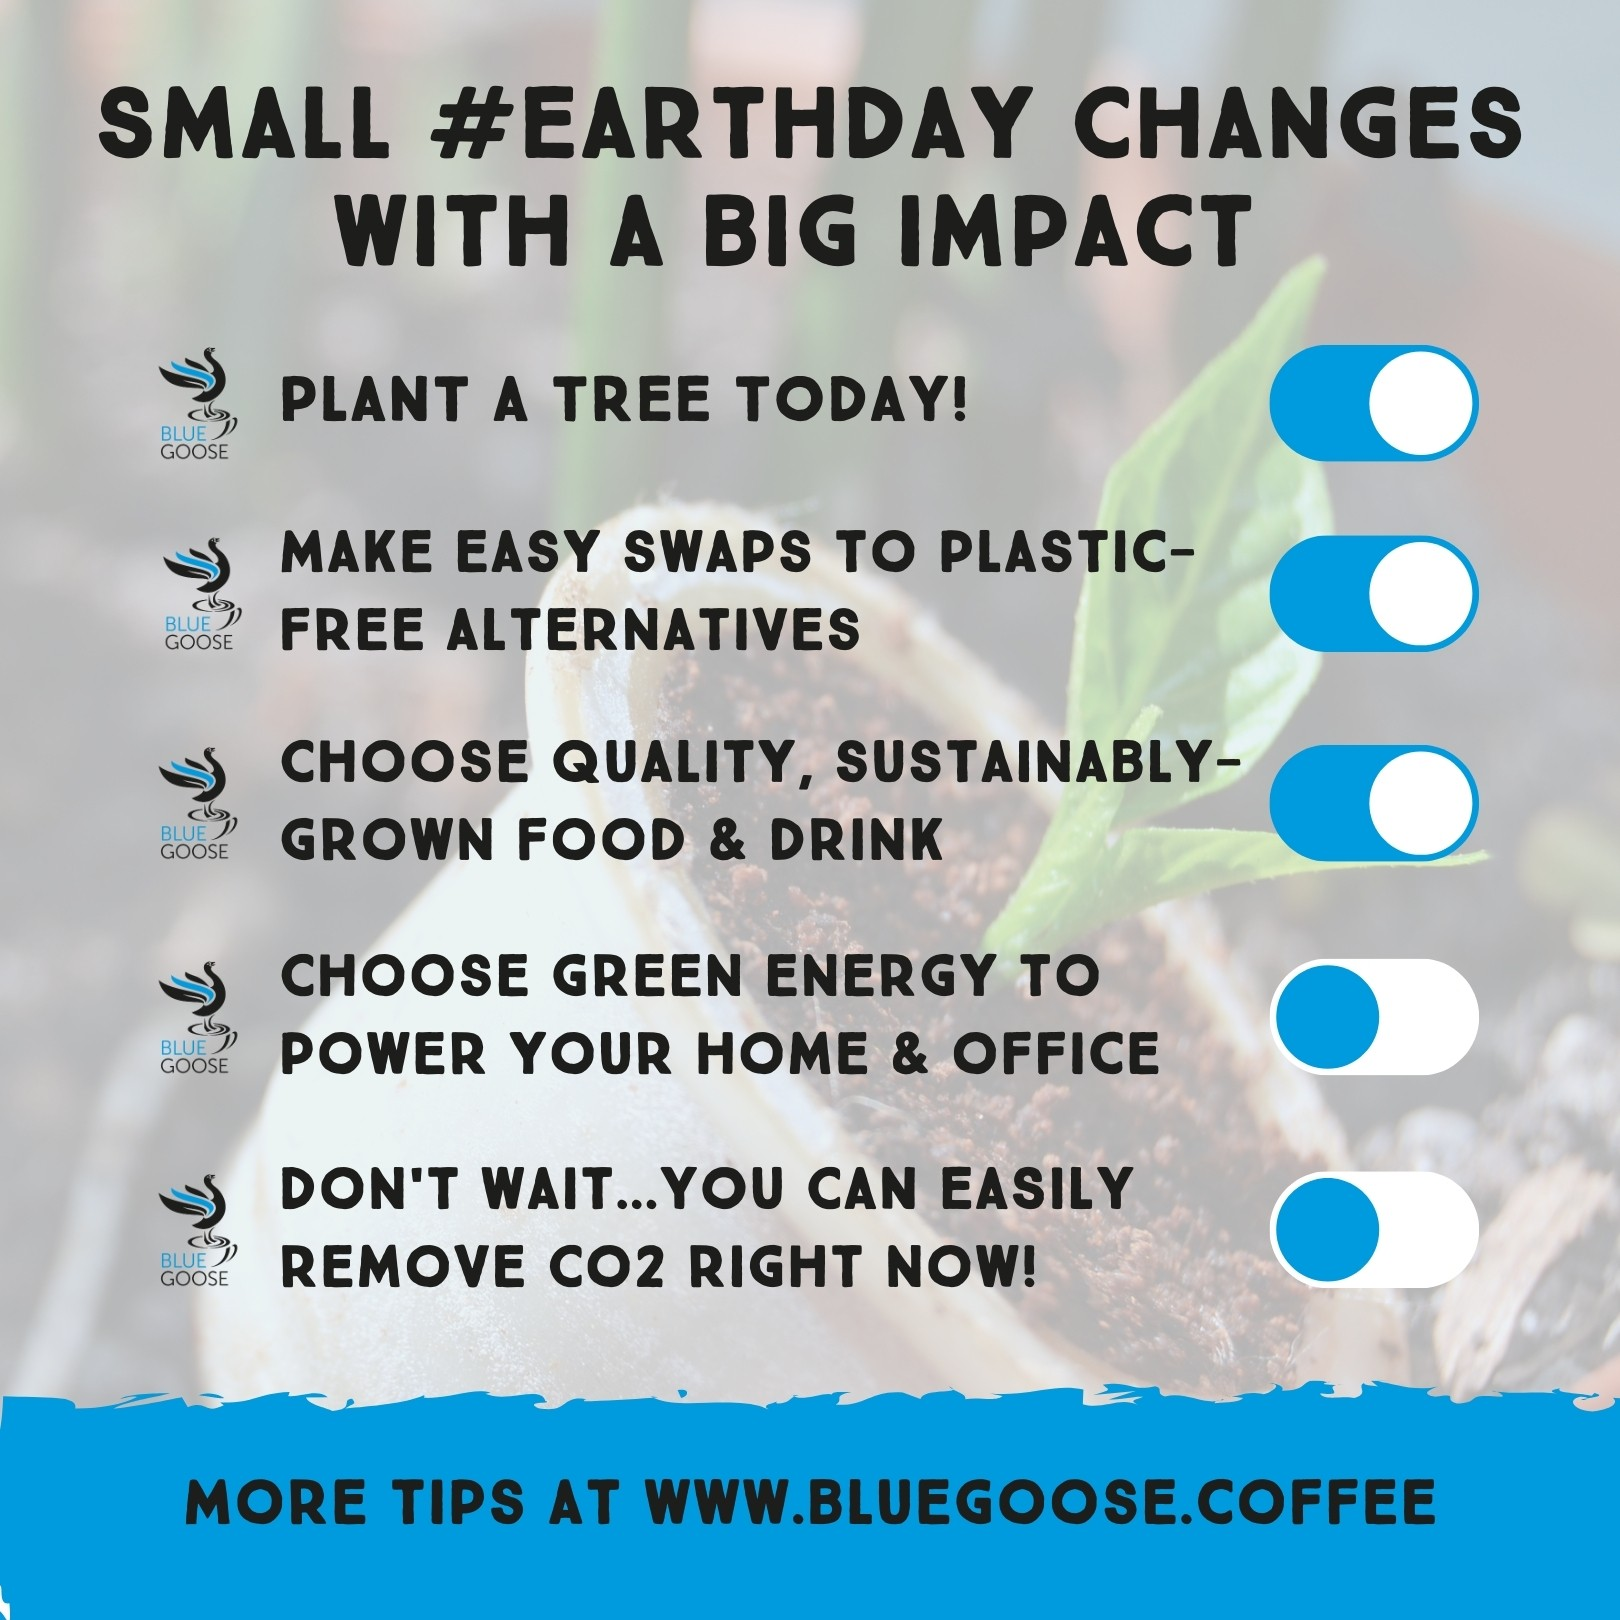 Small #EarthDay Changes with a big impact